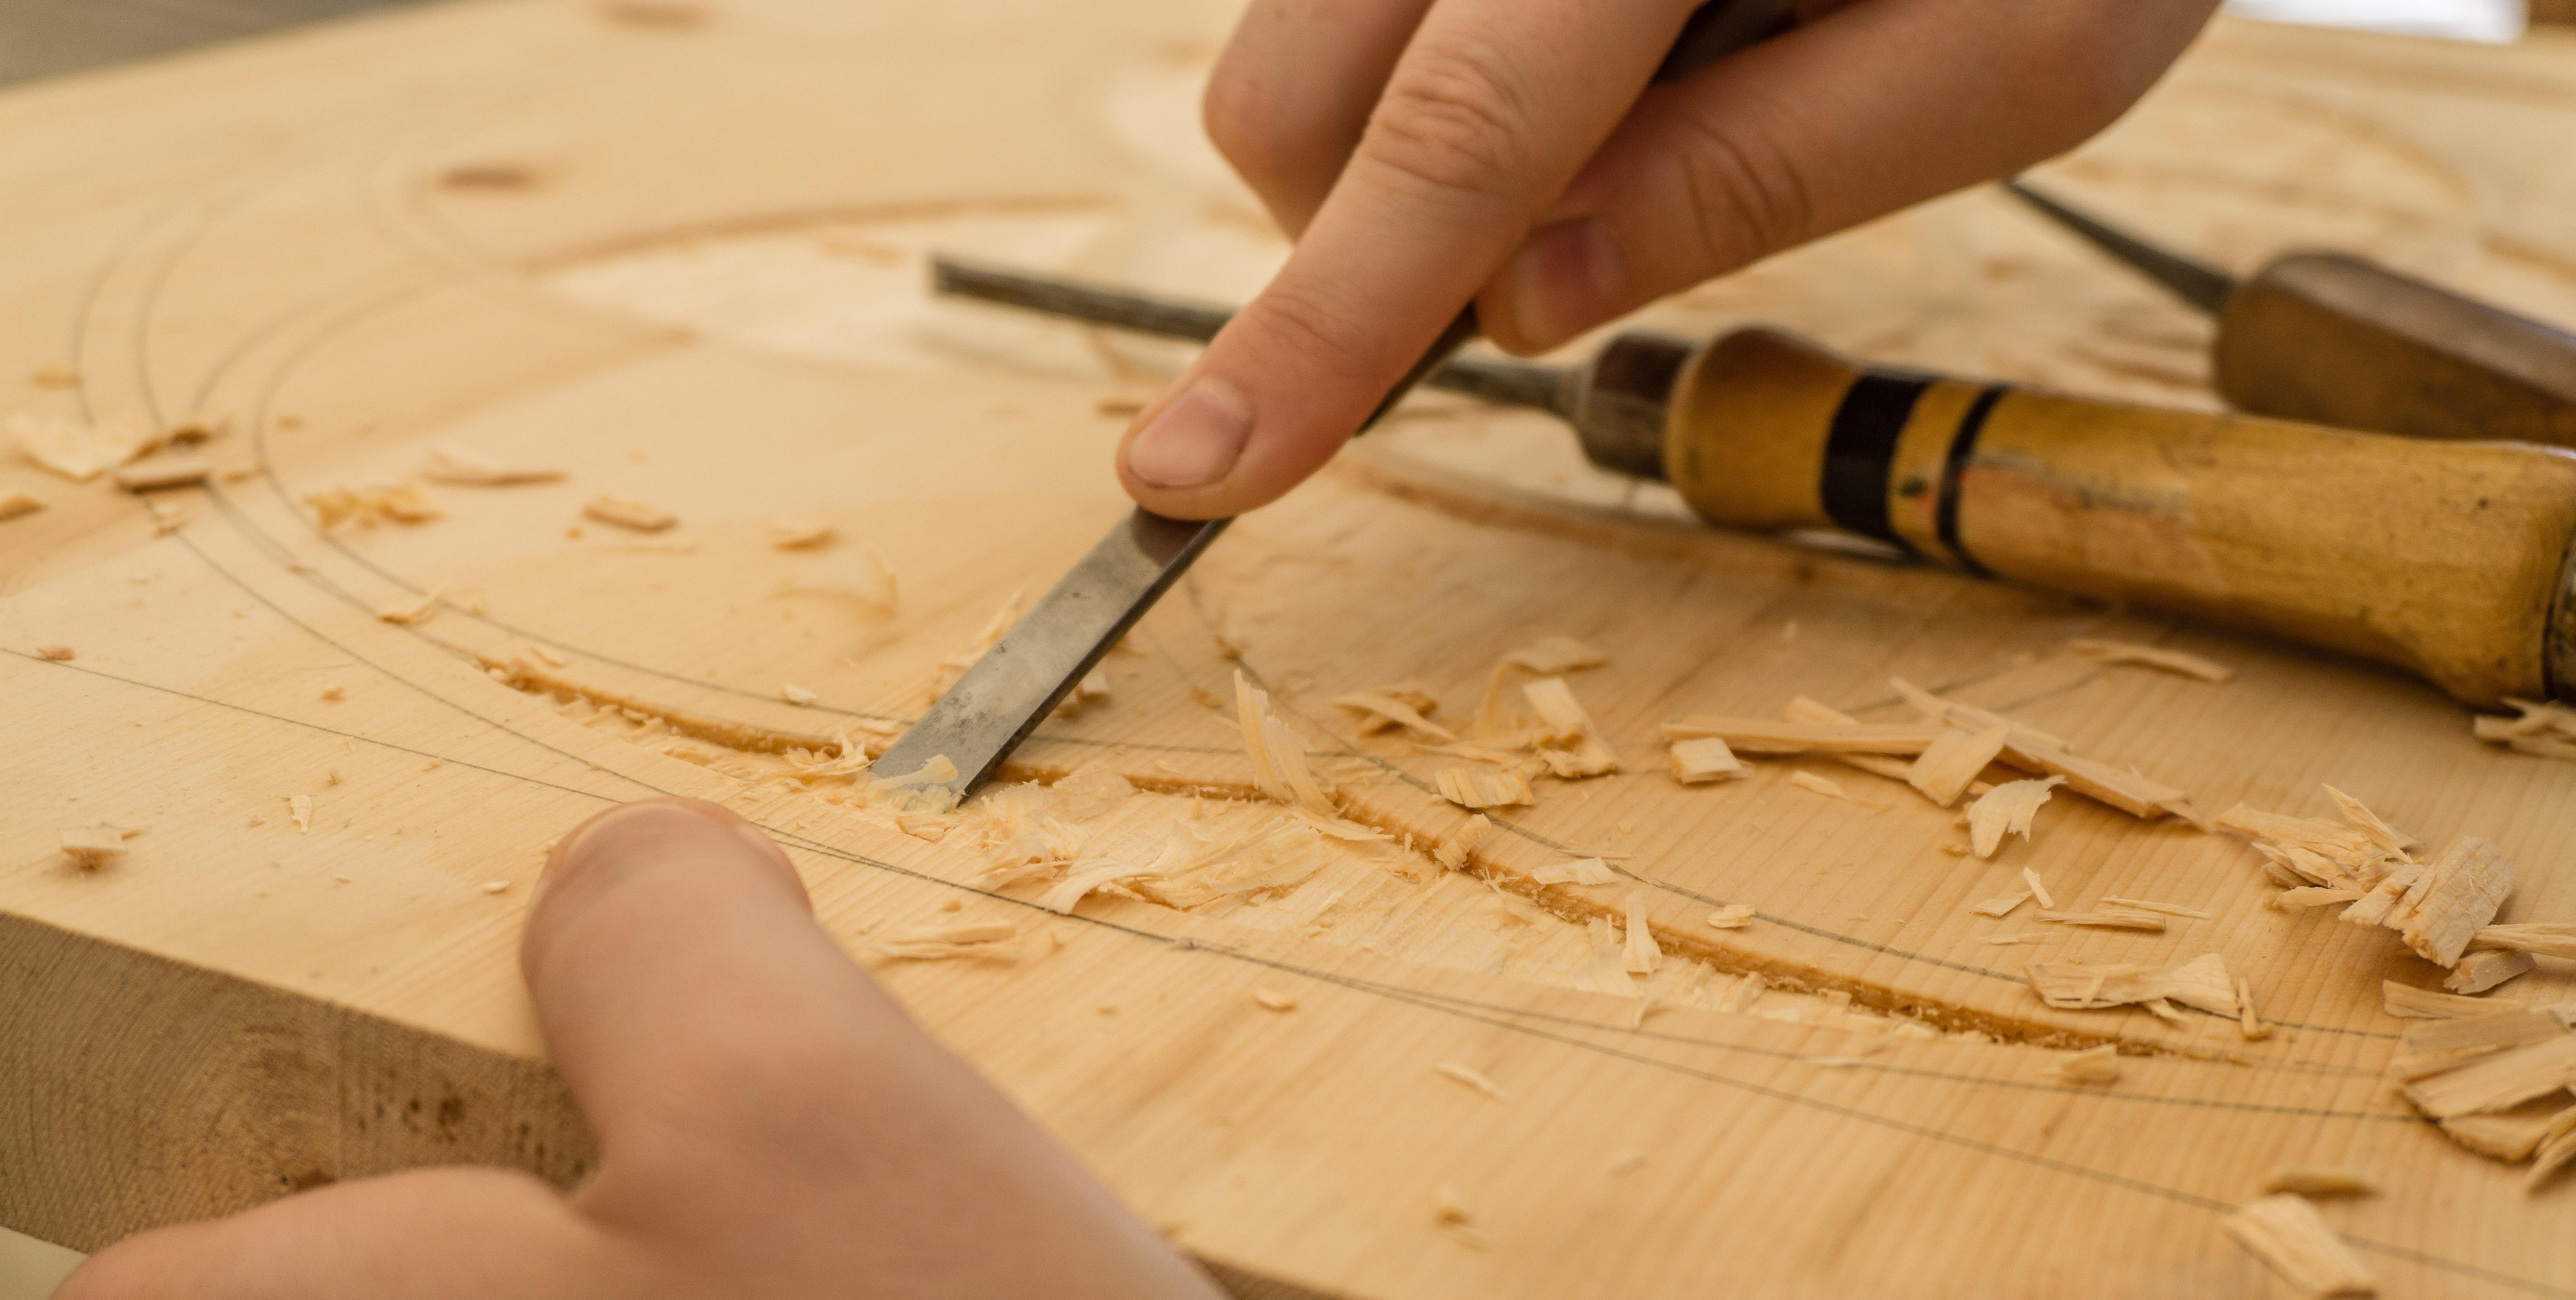 Close-up of a person using a chisel to carve in a large wooden board